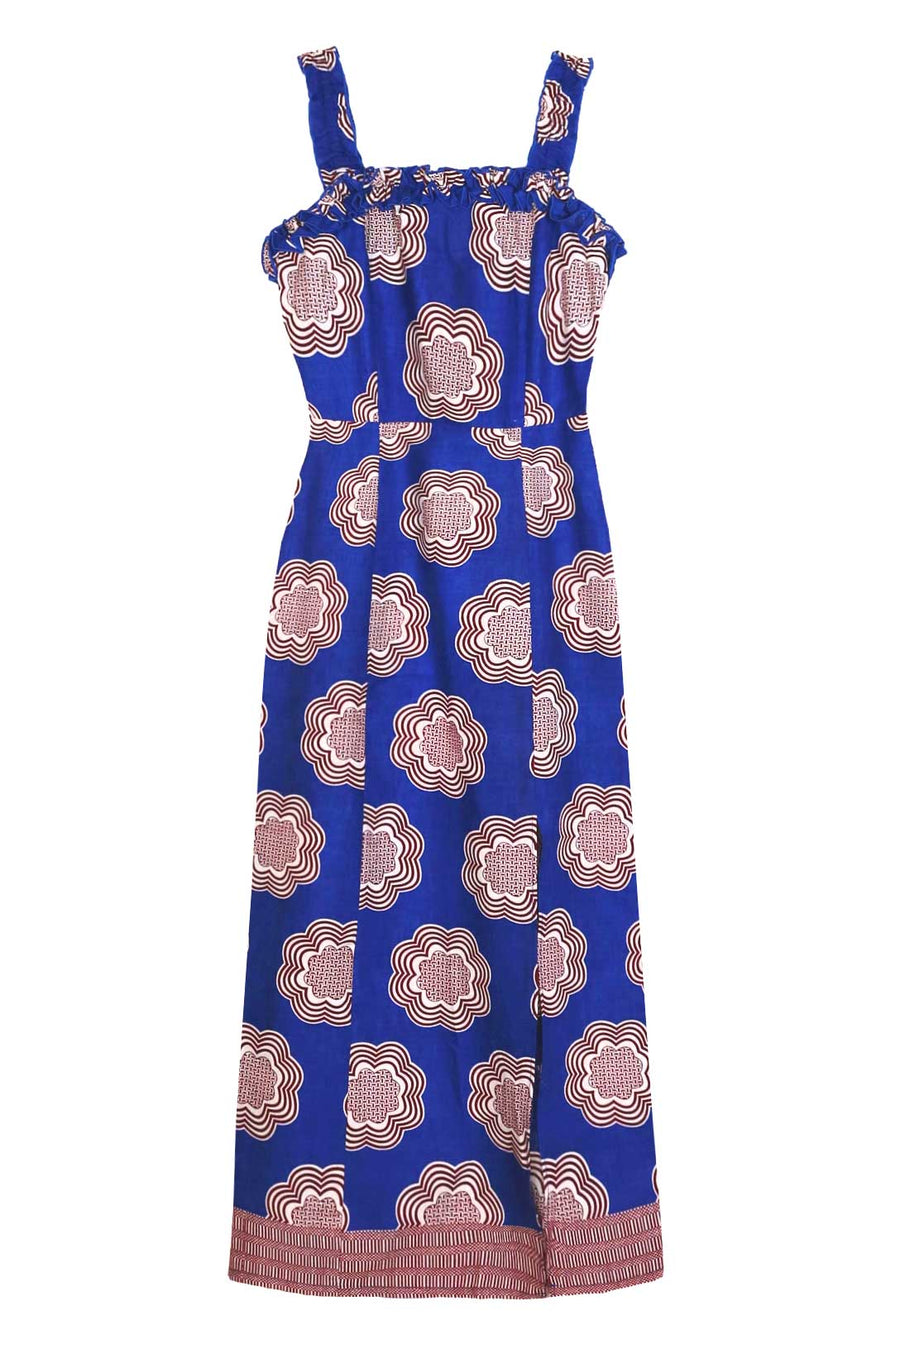 Retro Blue Frill Cotton Midi Dress